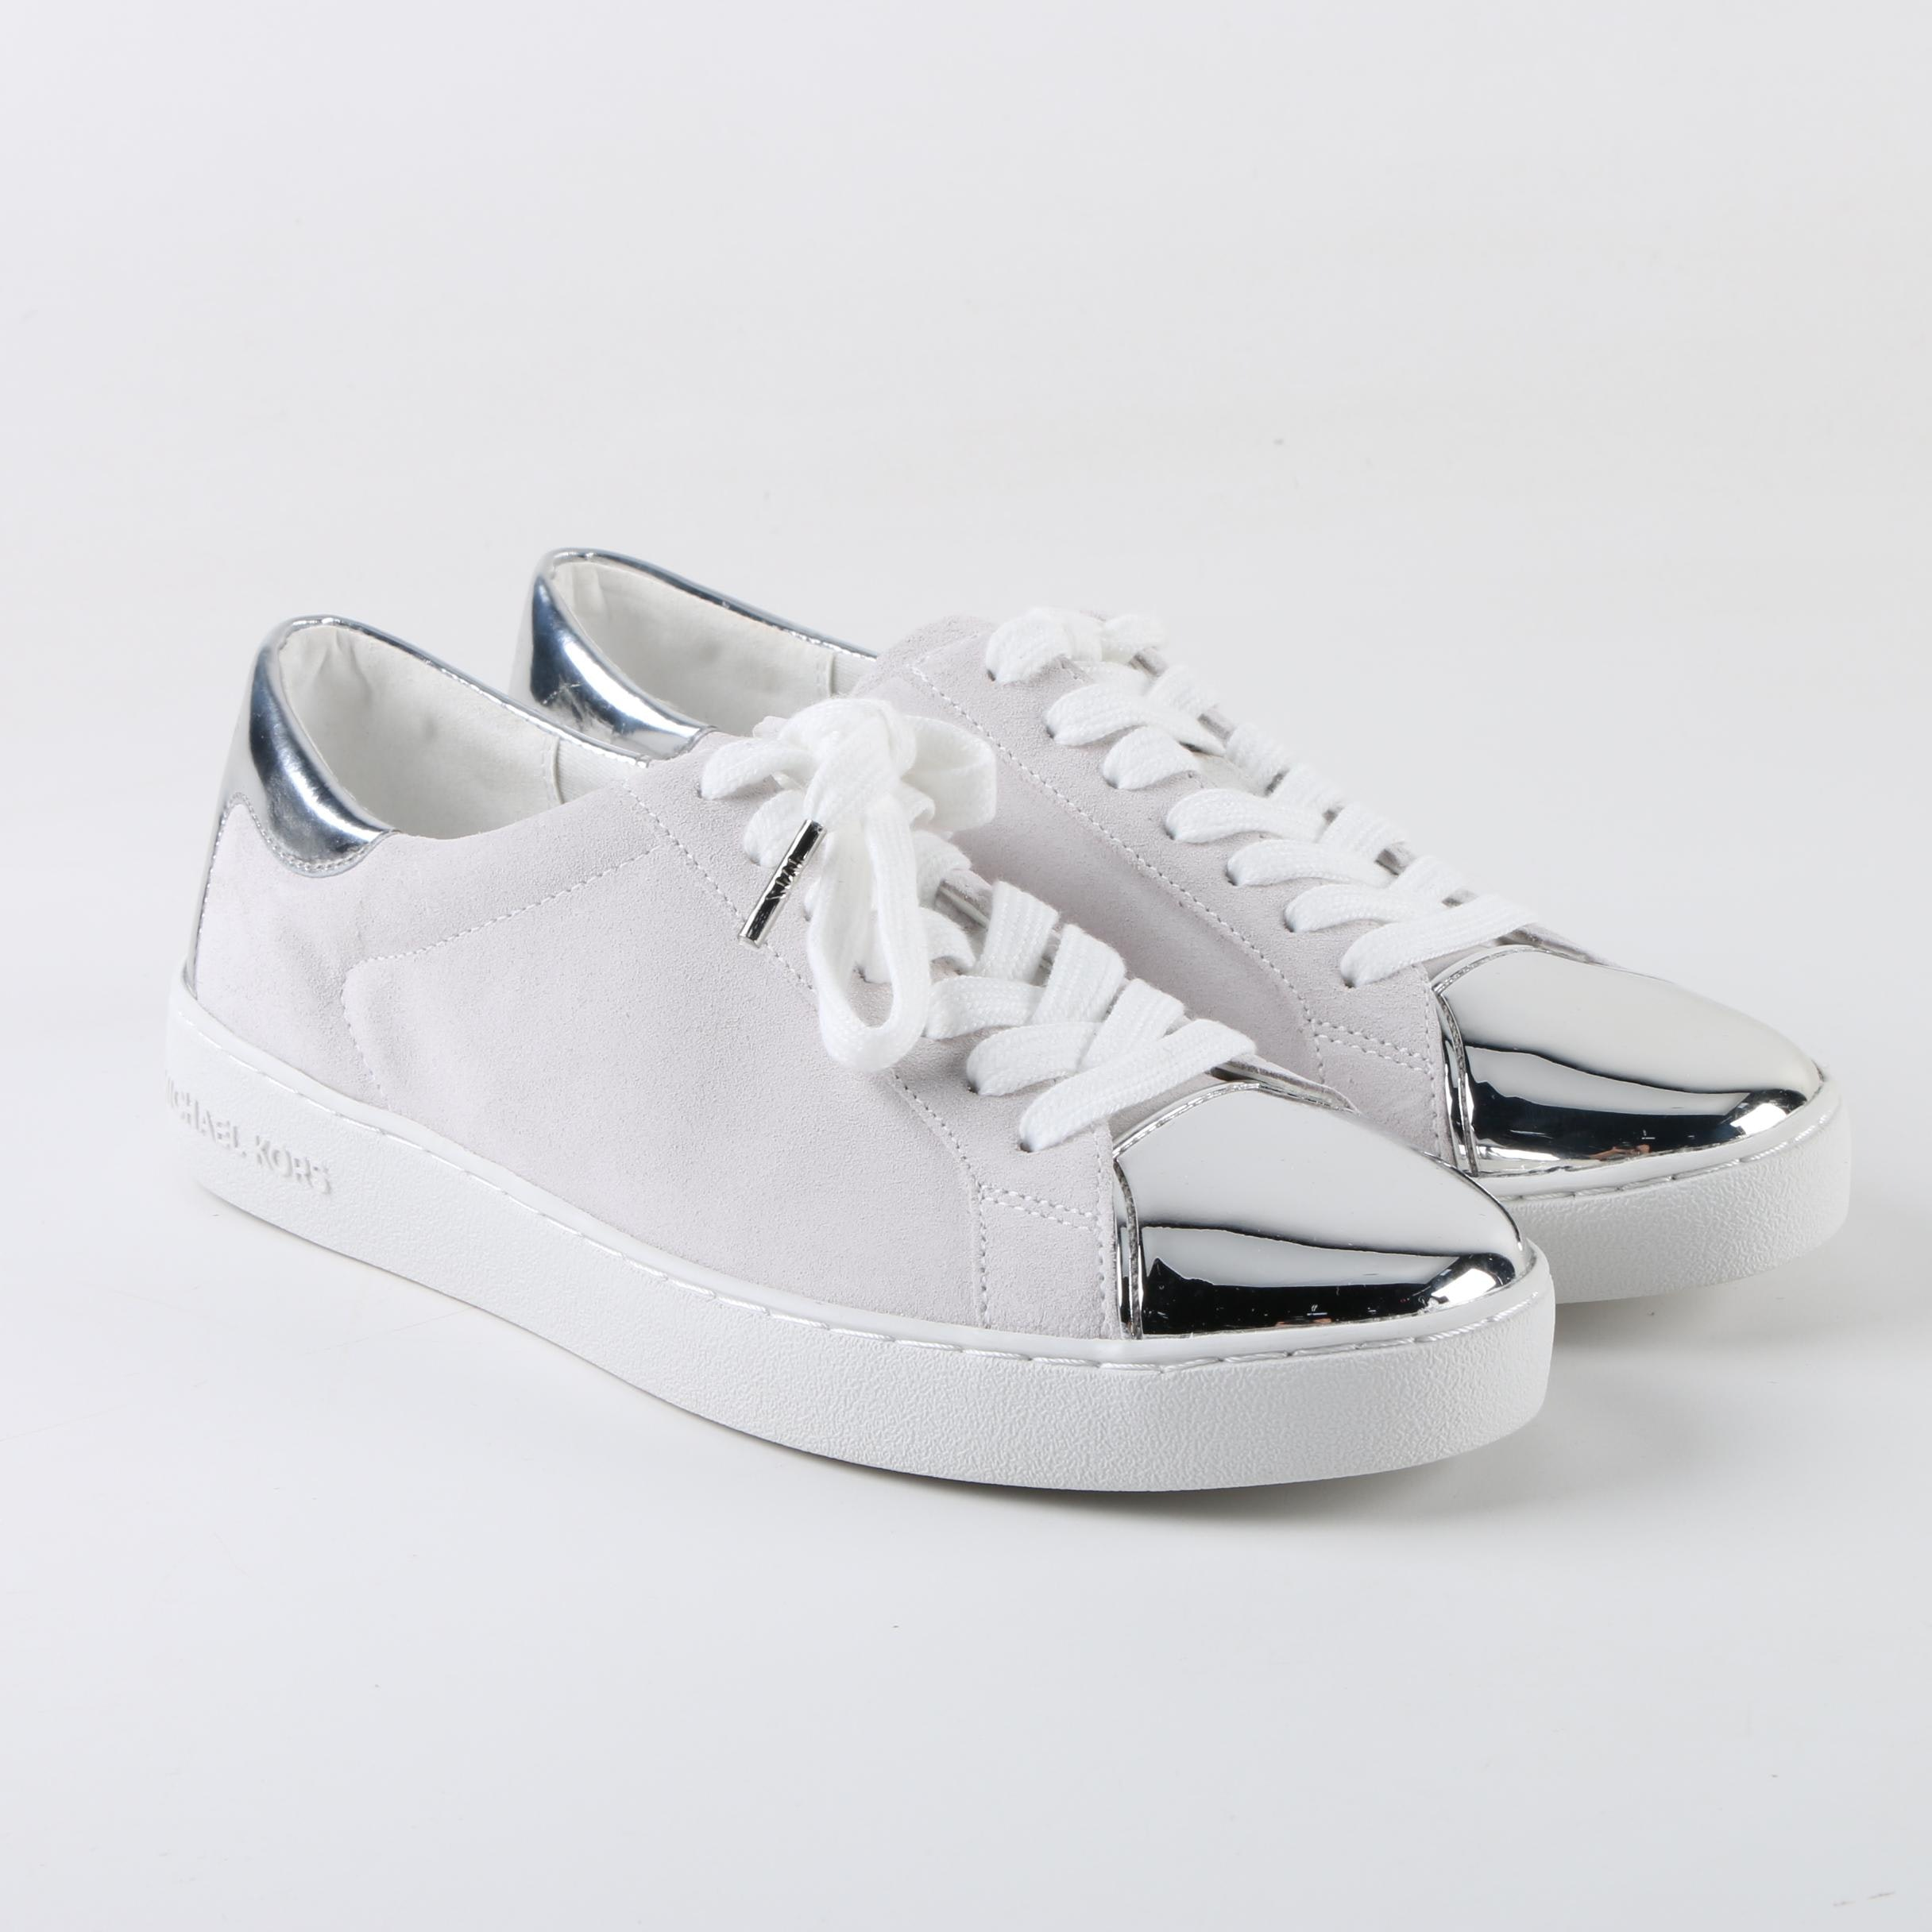 Women's MICHAEL Michael Kors Off-White Suede Sneakers with Metallic Accents